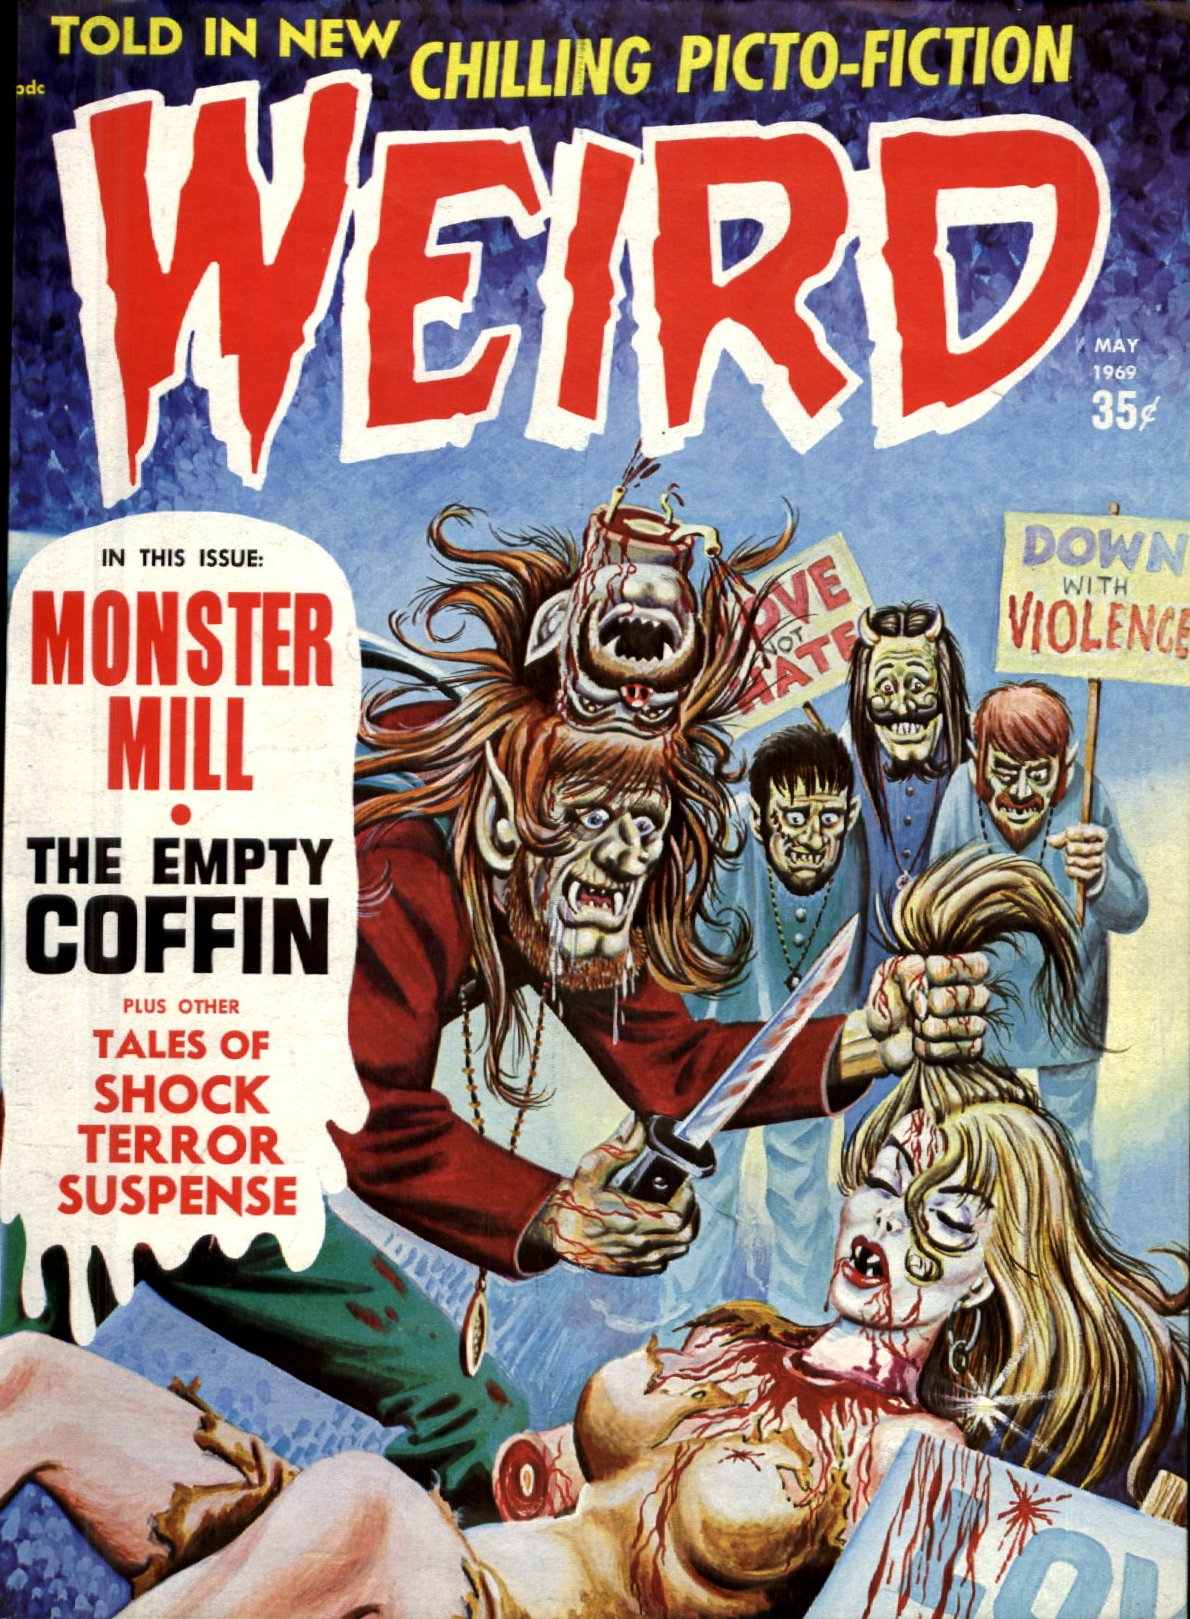 Weird Vol. 03 #2 (Eerie Publications, 1969)